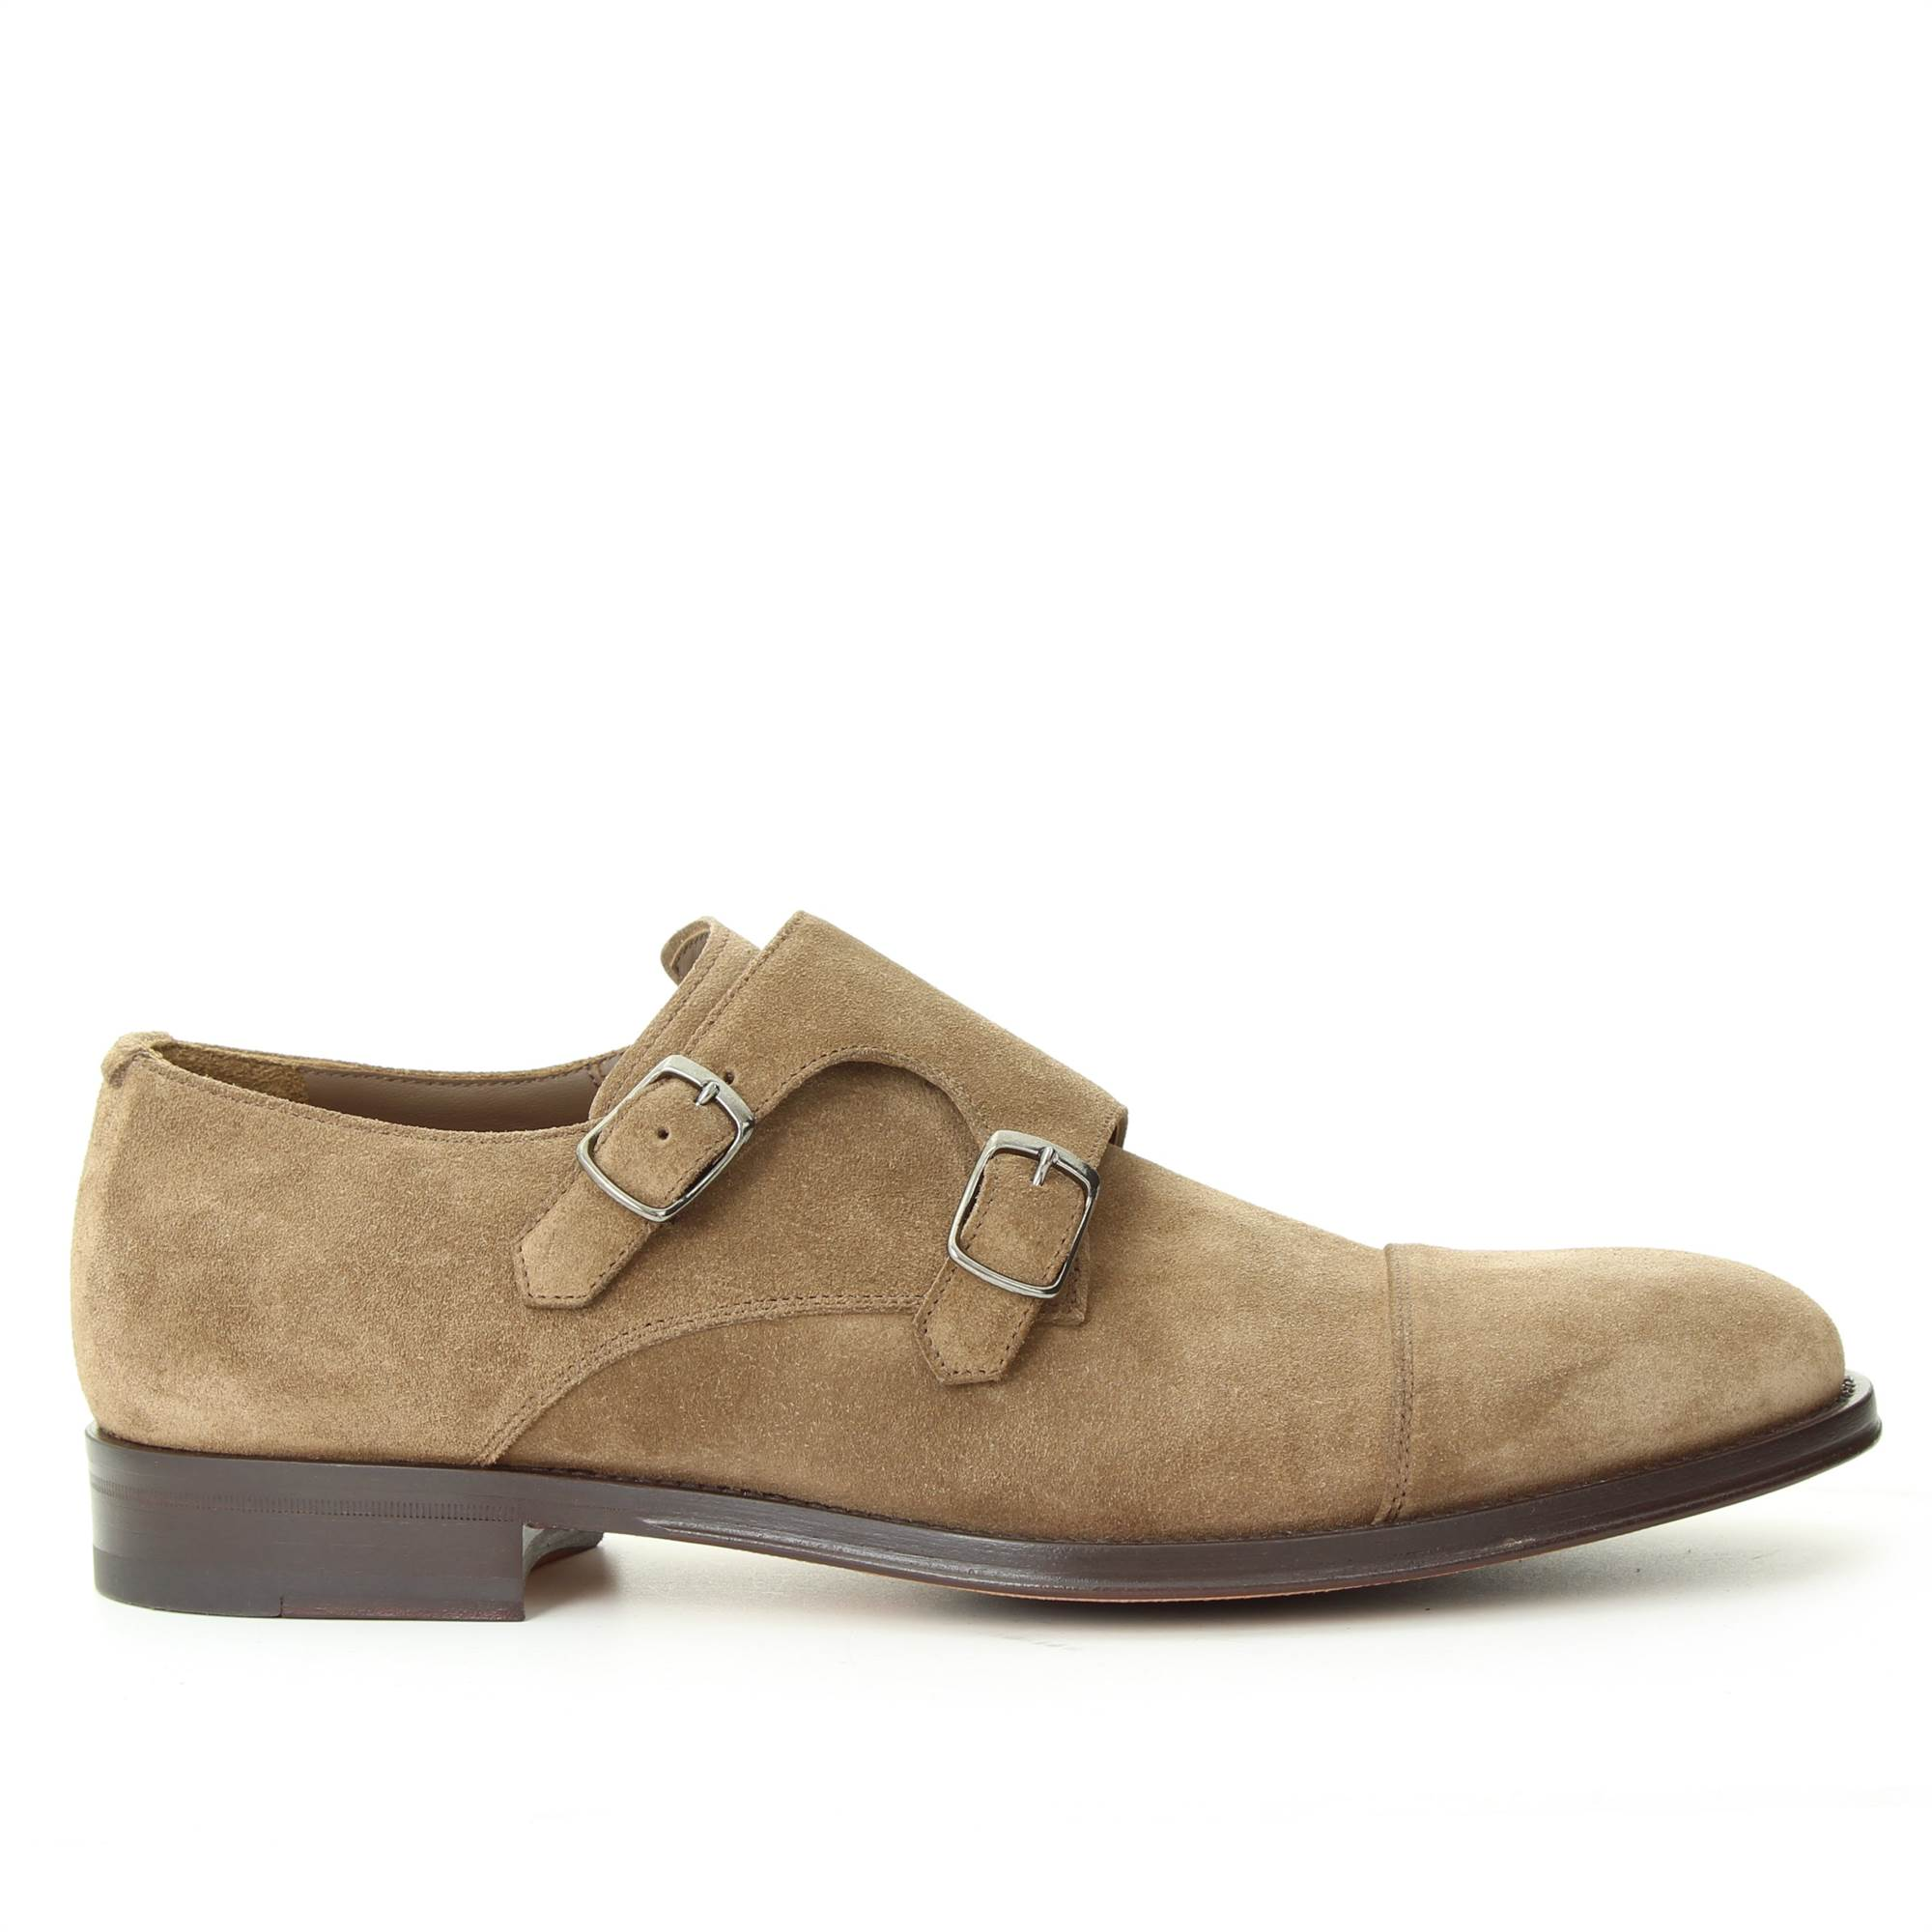 LANCIOTTI DE VERZI LE01006 SUGHERO Shoes Man DOUBLE BUCKLE